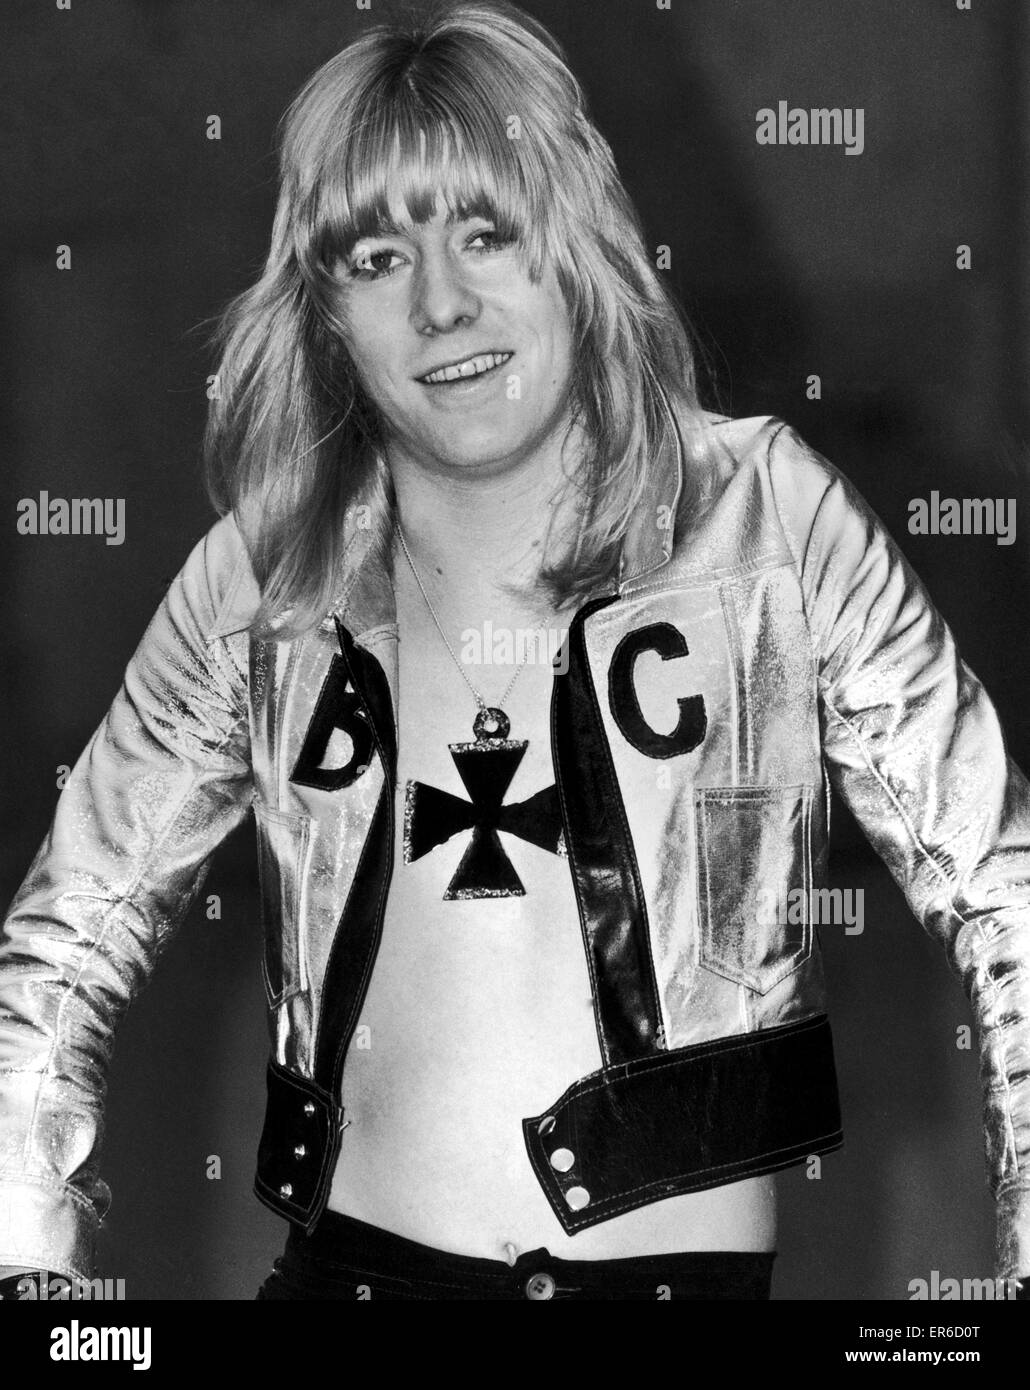 Brian Connolly High Resolution Stock Photography And Images Alamy